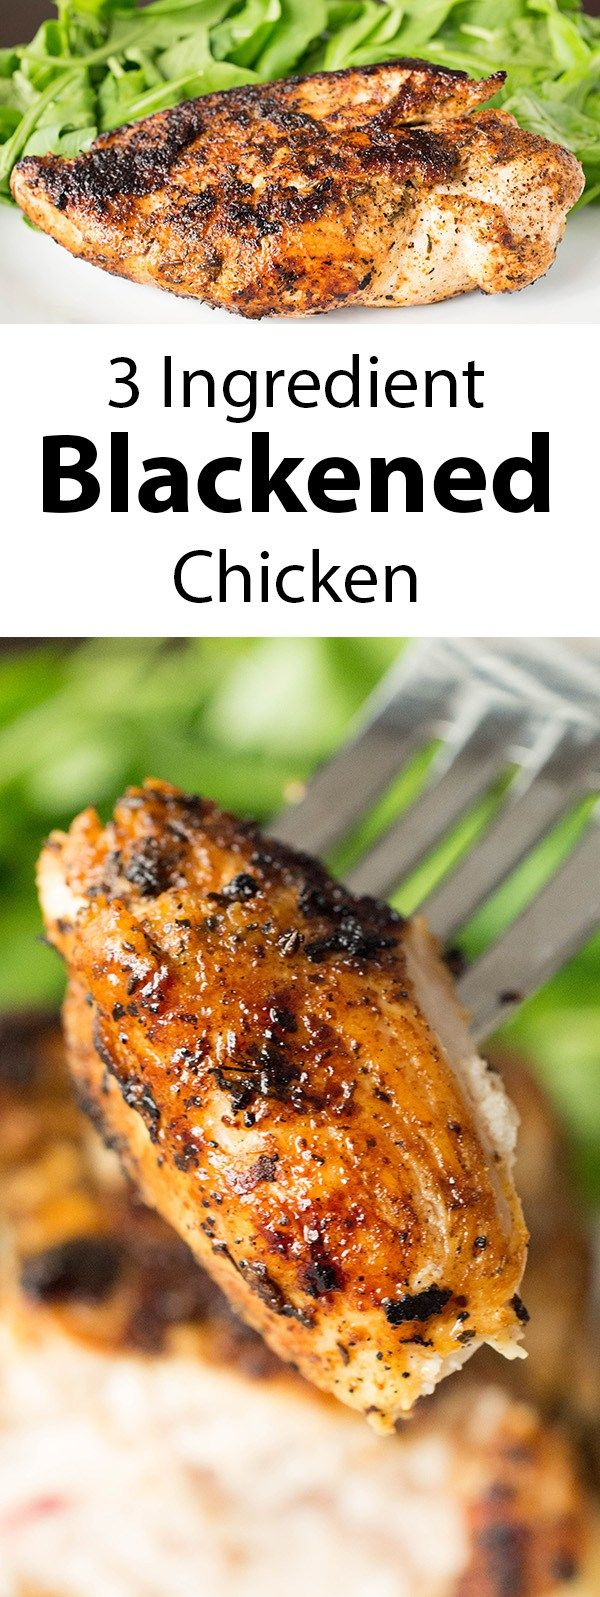 One of our favorite weeknight meals: easy, three ingredient blackened chicken.